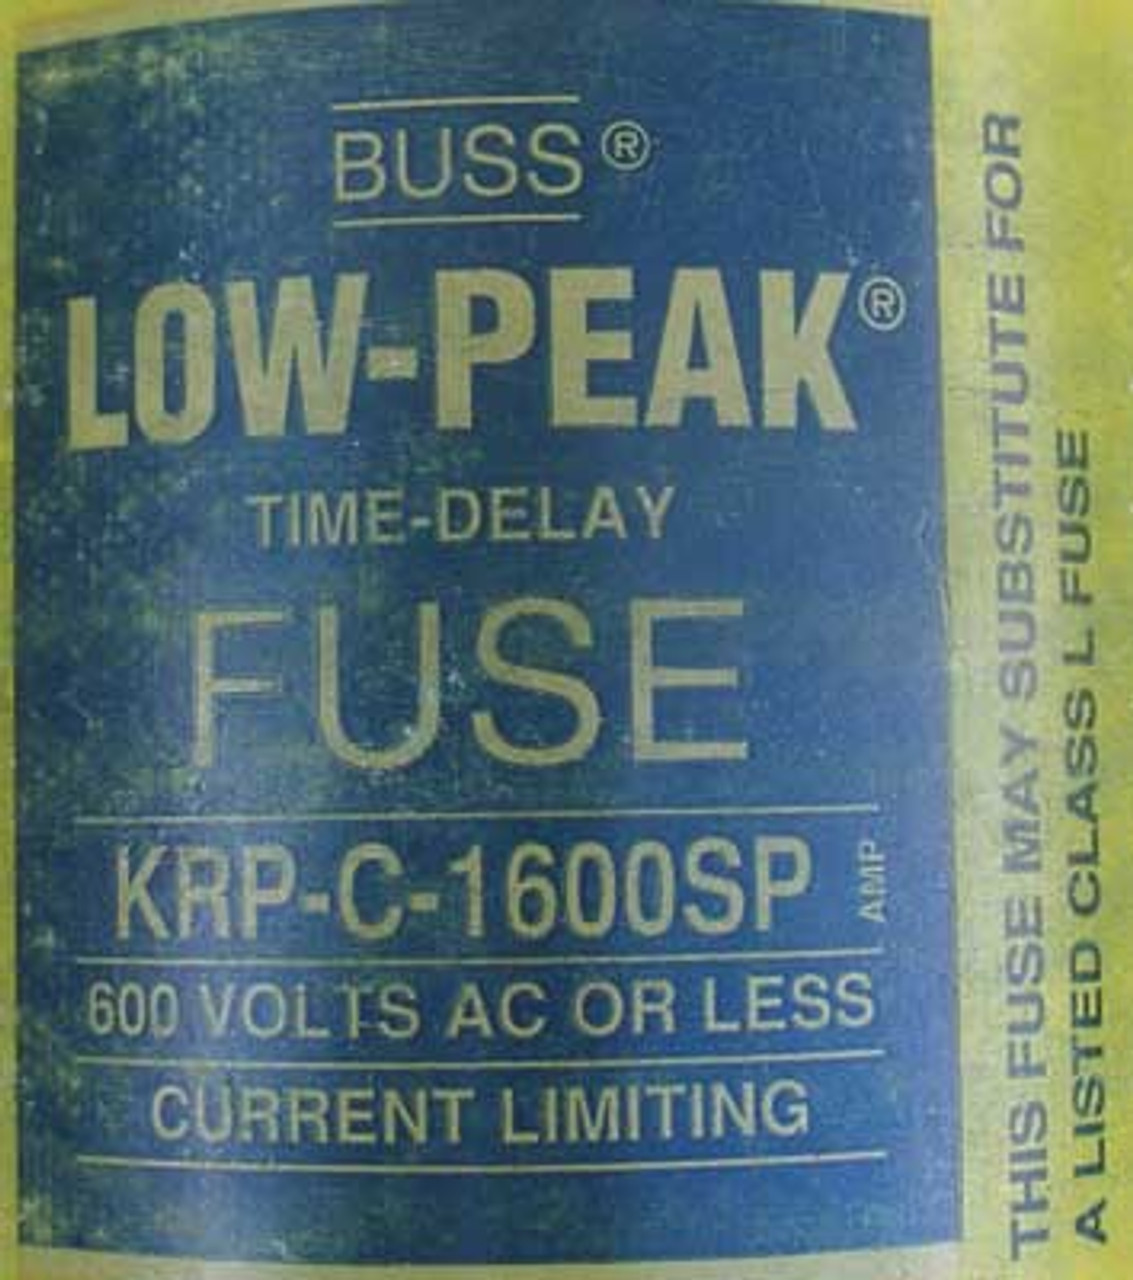 Buss Low-Peak Time-Delay Fuse KRP-C-1600SP 1600 Amp 600VAC - New